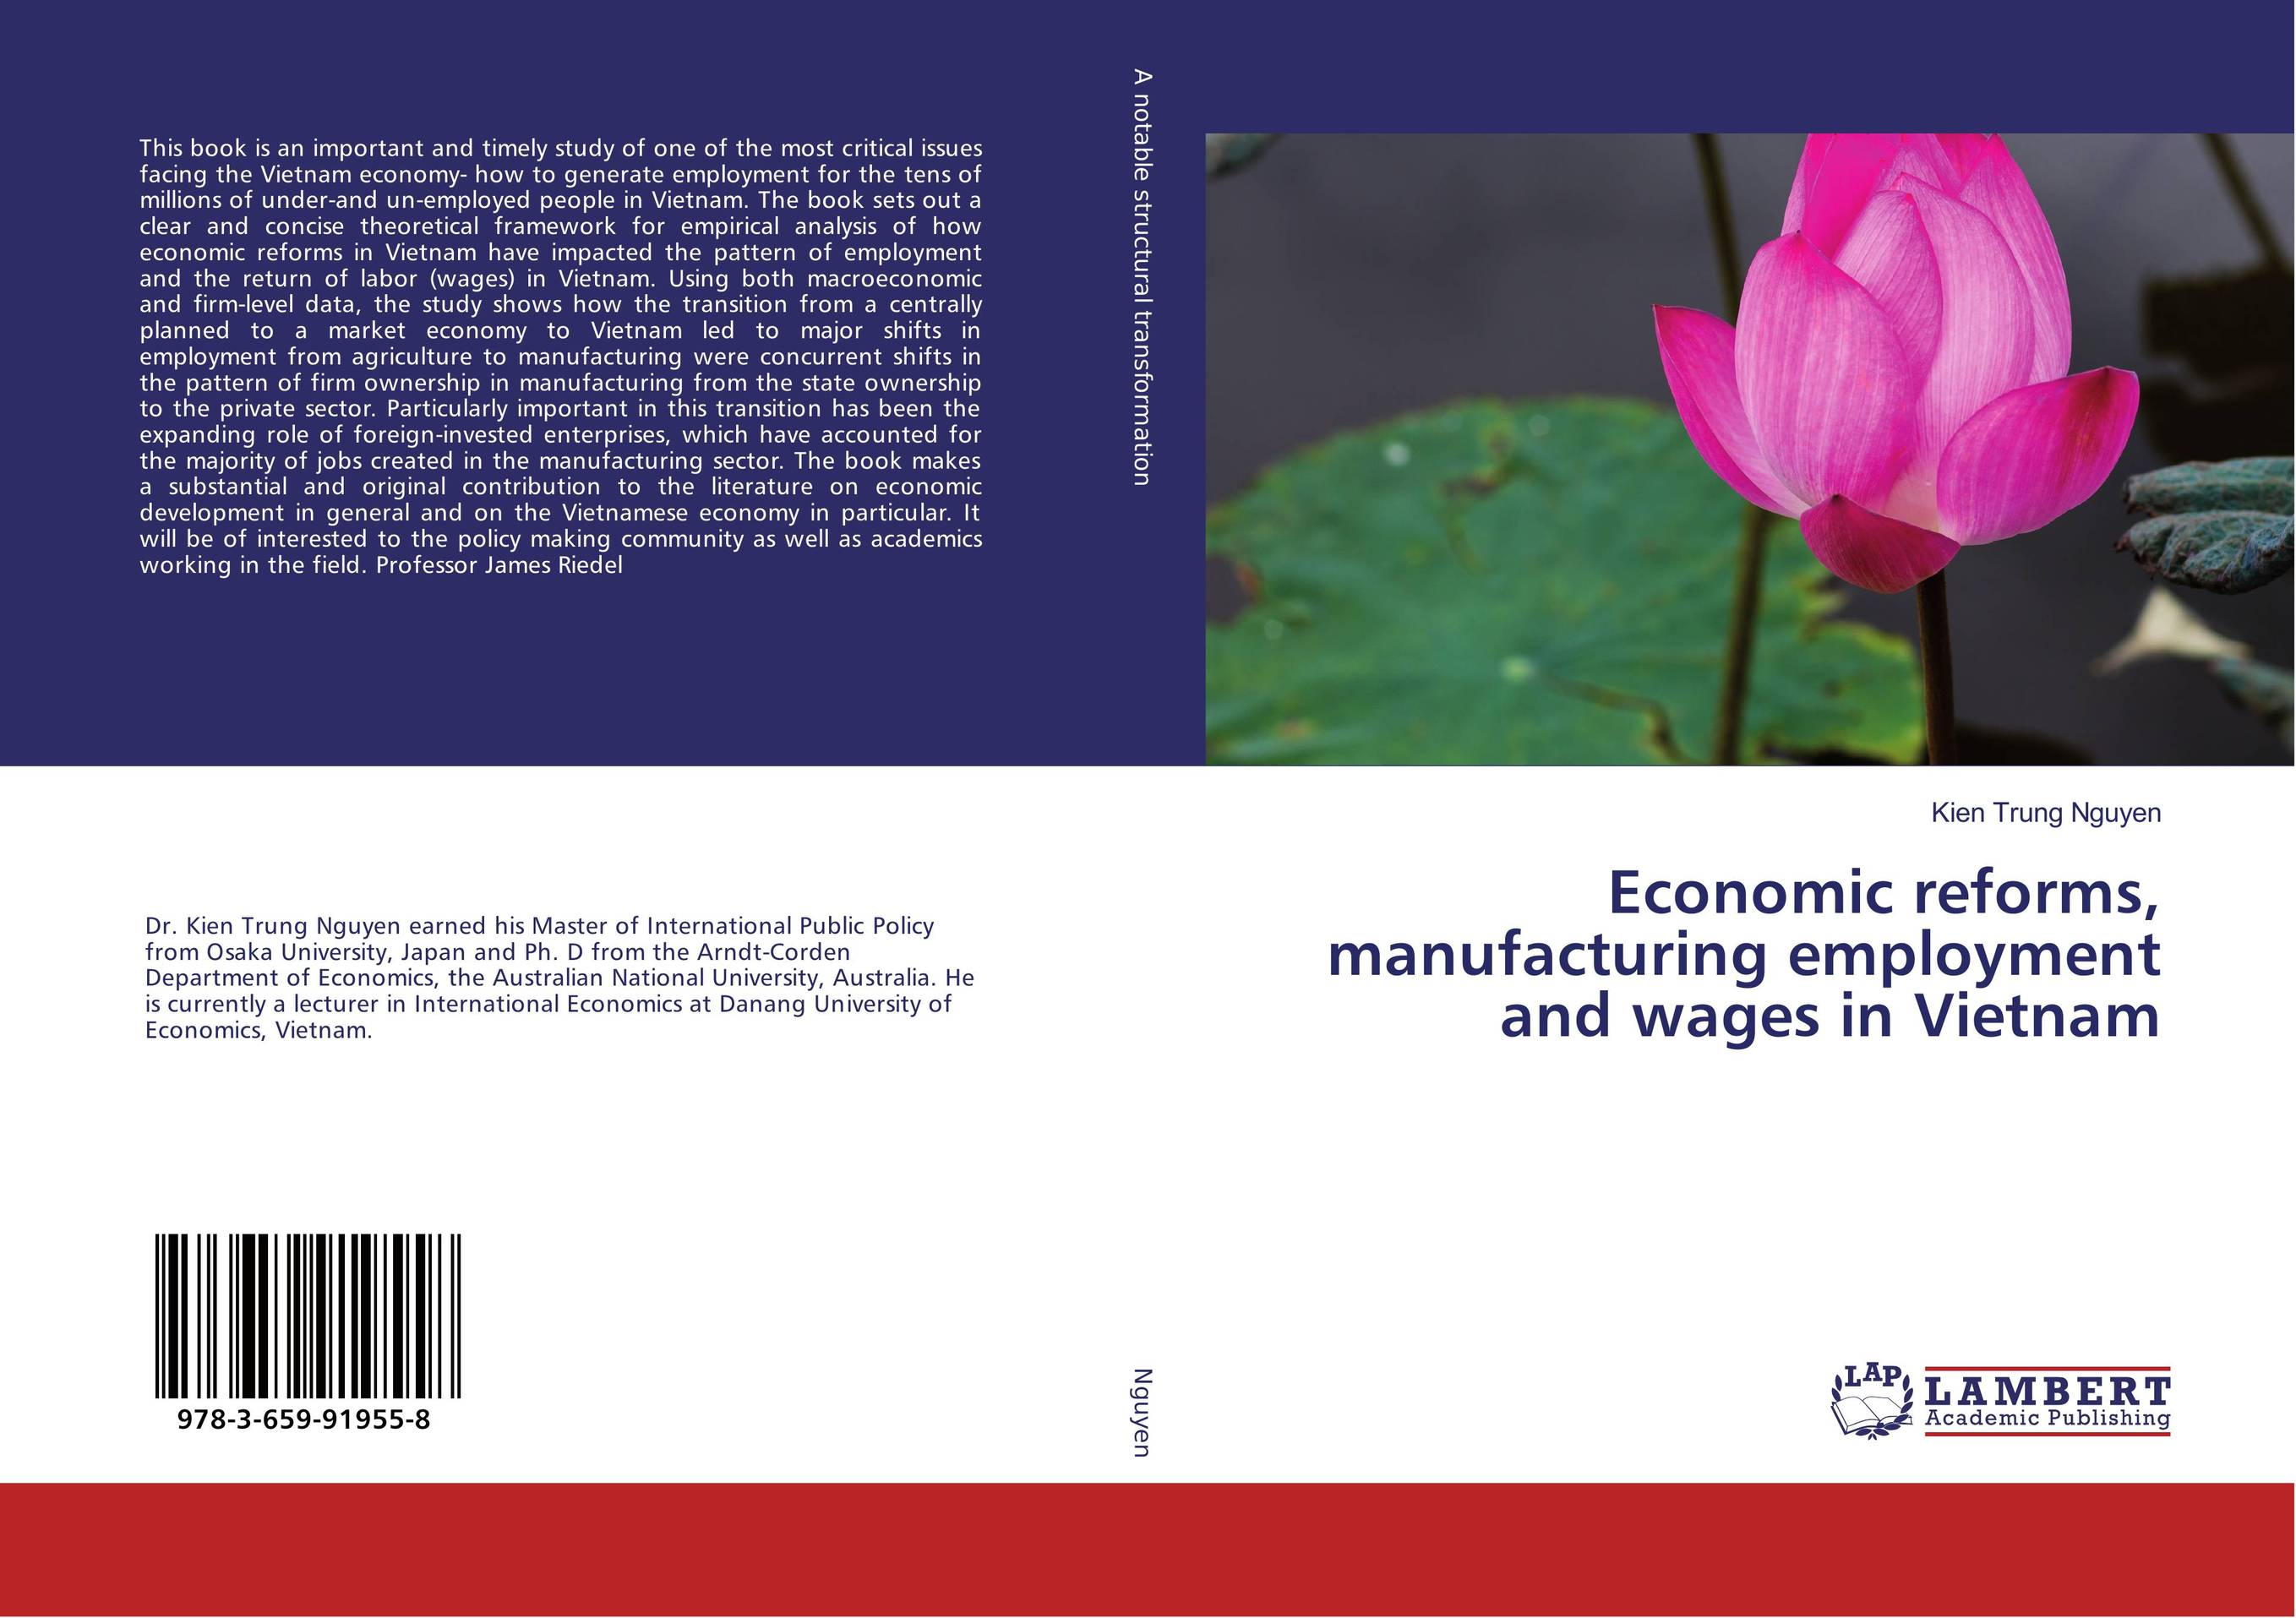 9783659919558 Economic reforms, manufacturing employment and wages in Vietnam